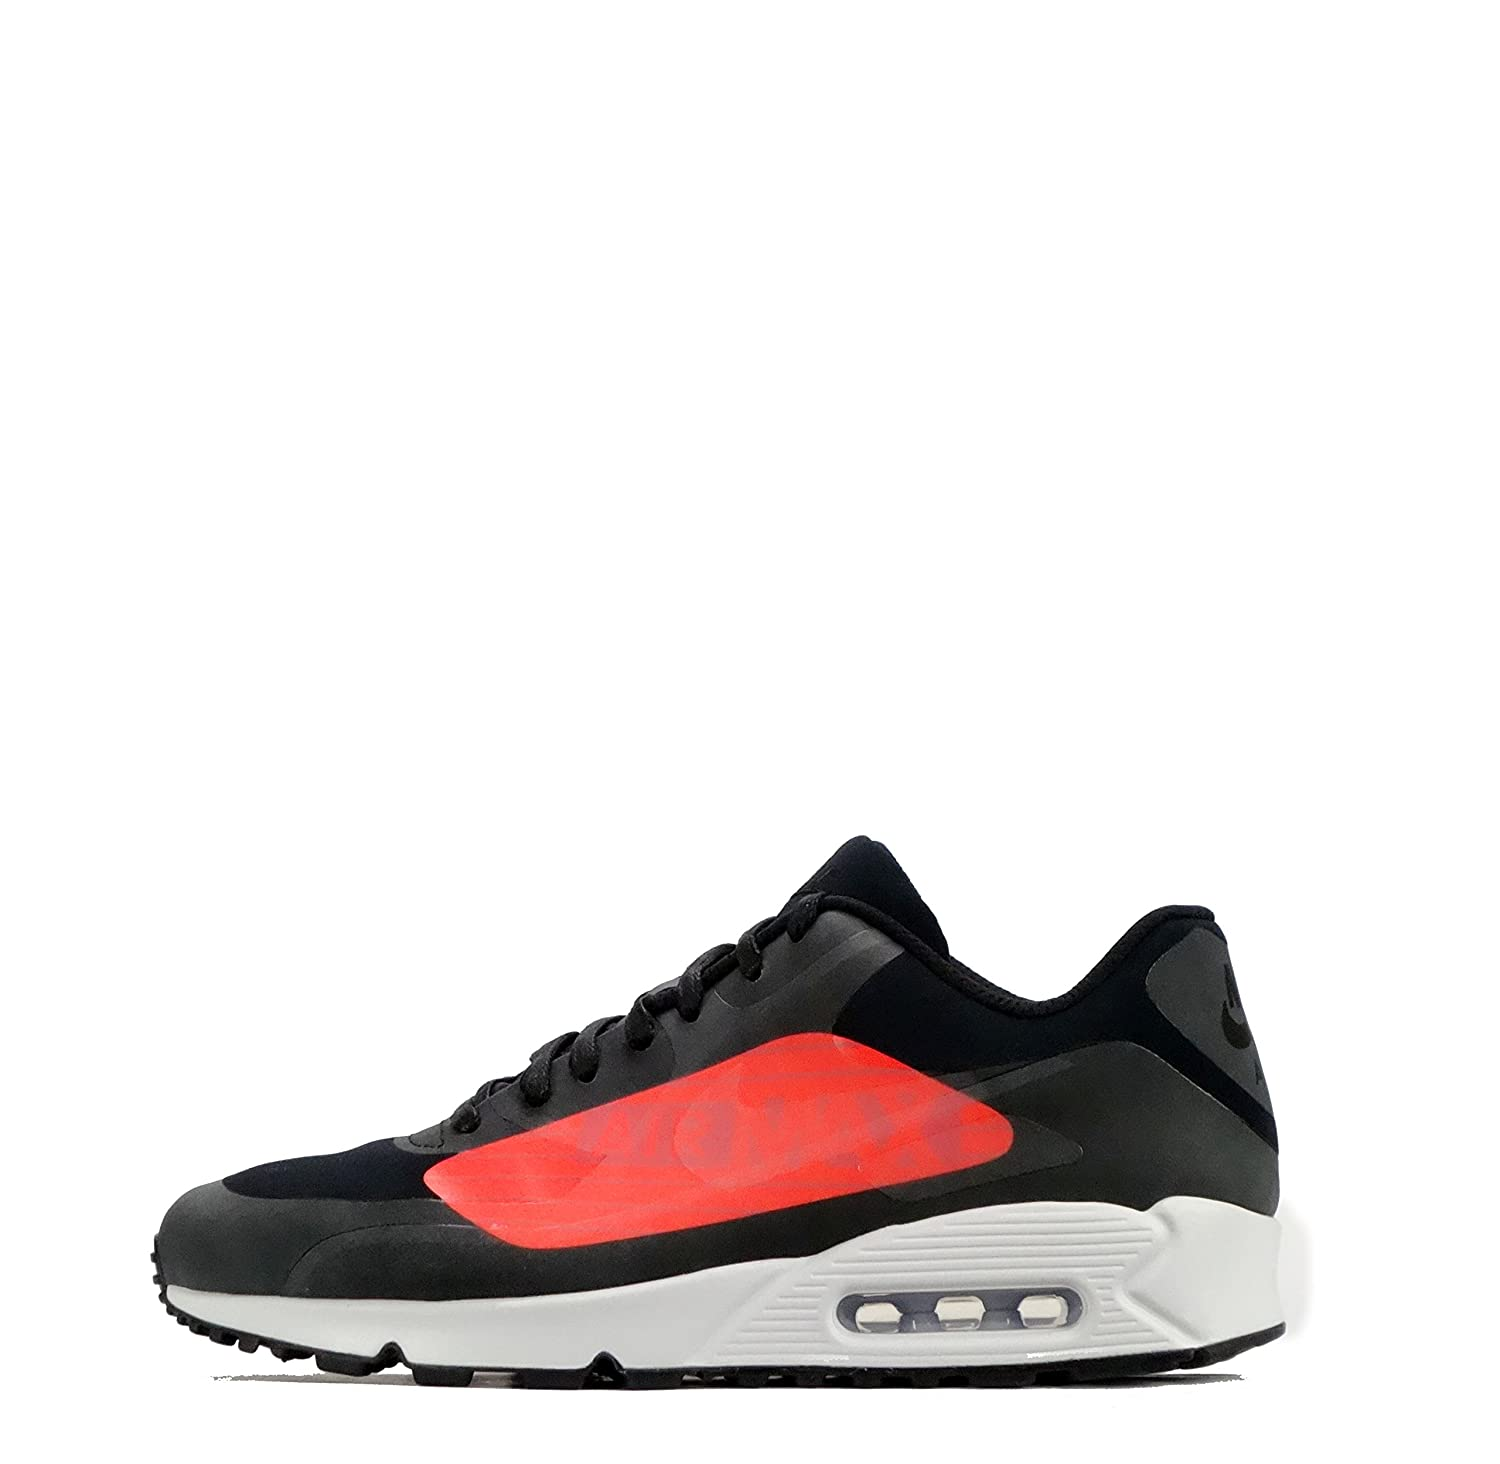 598f0324f03b1 Nike Air Max 90 NS GPX Big Logo Men's Shoes: Amazon.co.uk: Shoes & Bags